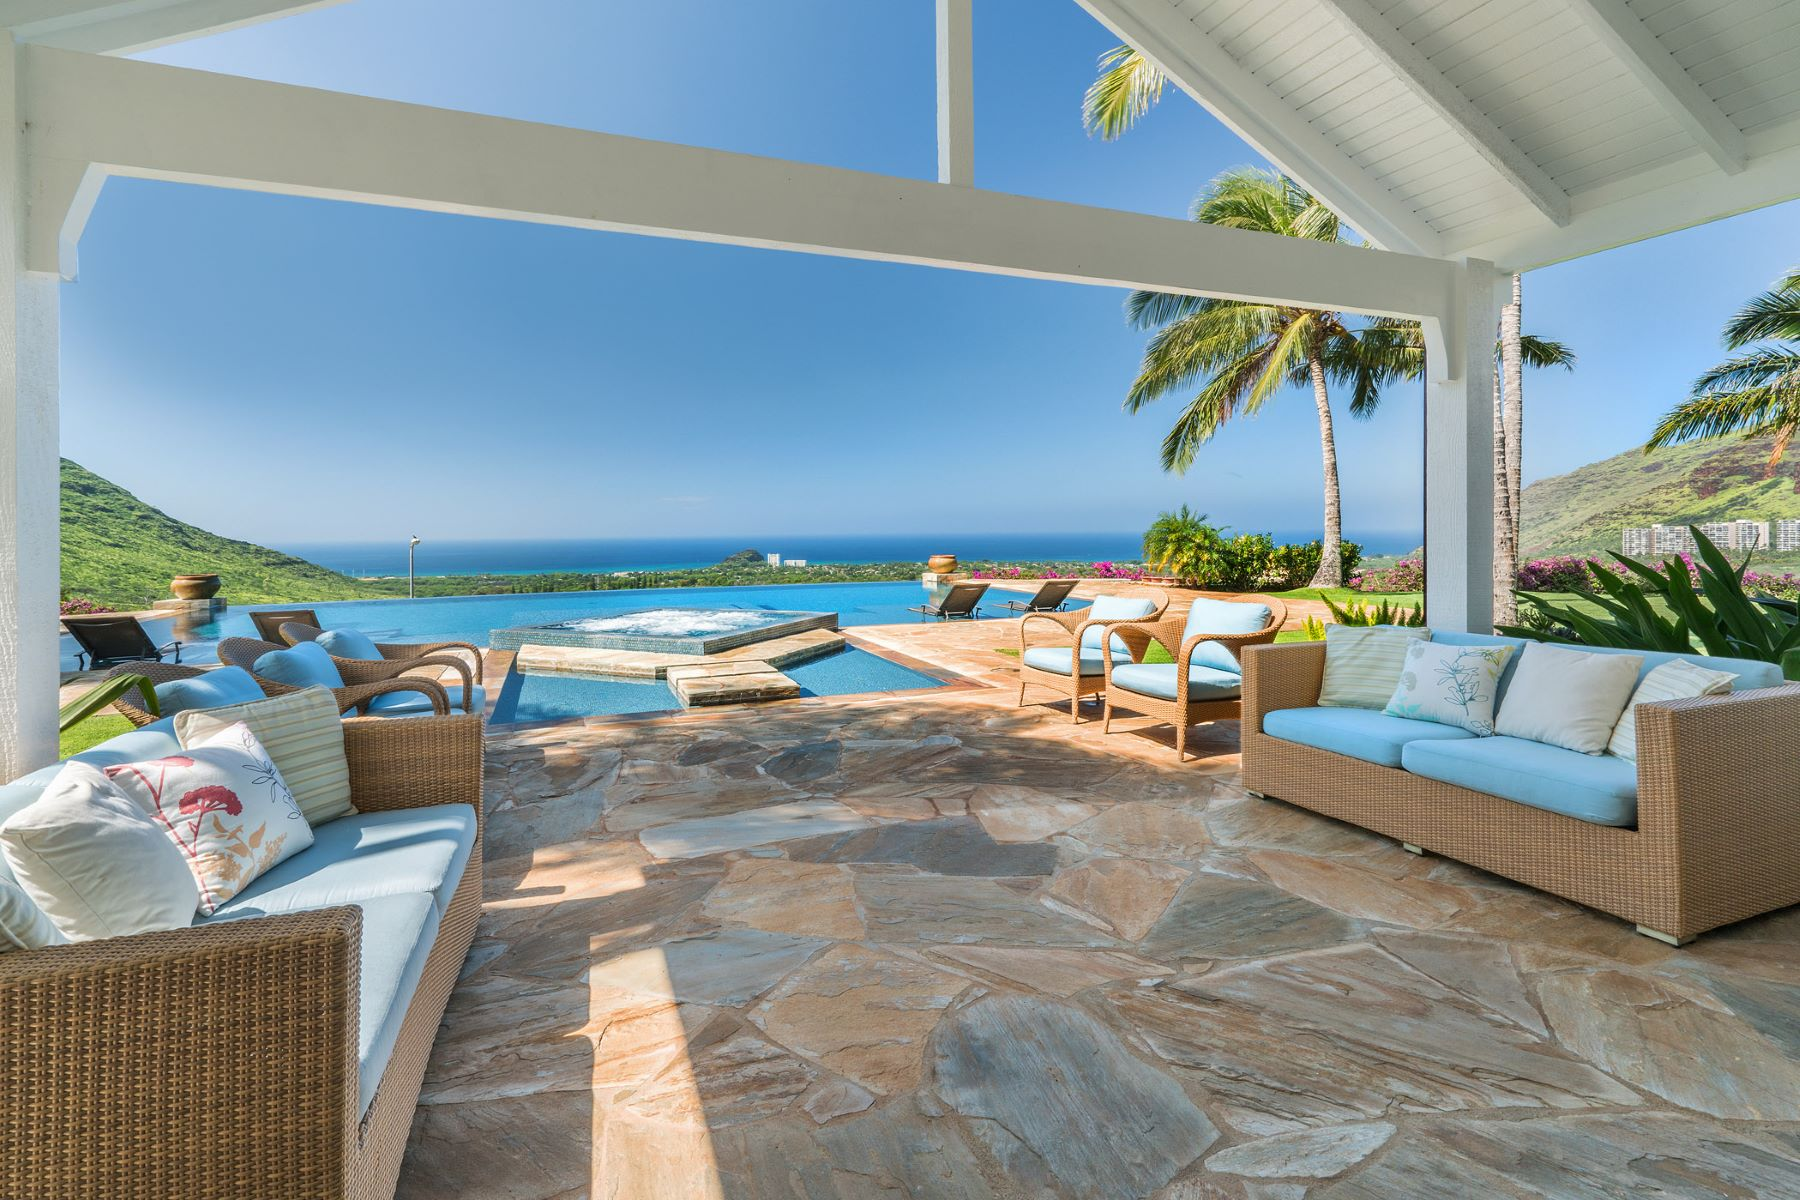 Tek Ailelik Ev için Satış at Award Winning Private Estate with Ocean Views 84-870 Alahele Street Makaha, Waianae, Hawaii, 96792 Amerika Birleşik Devletleri